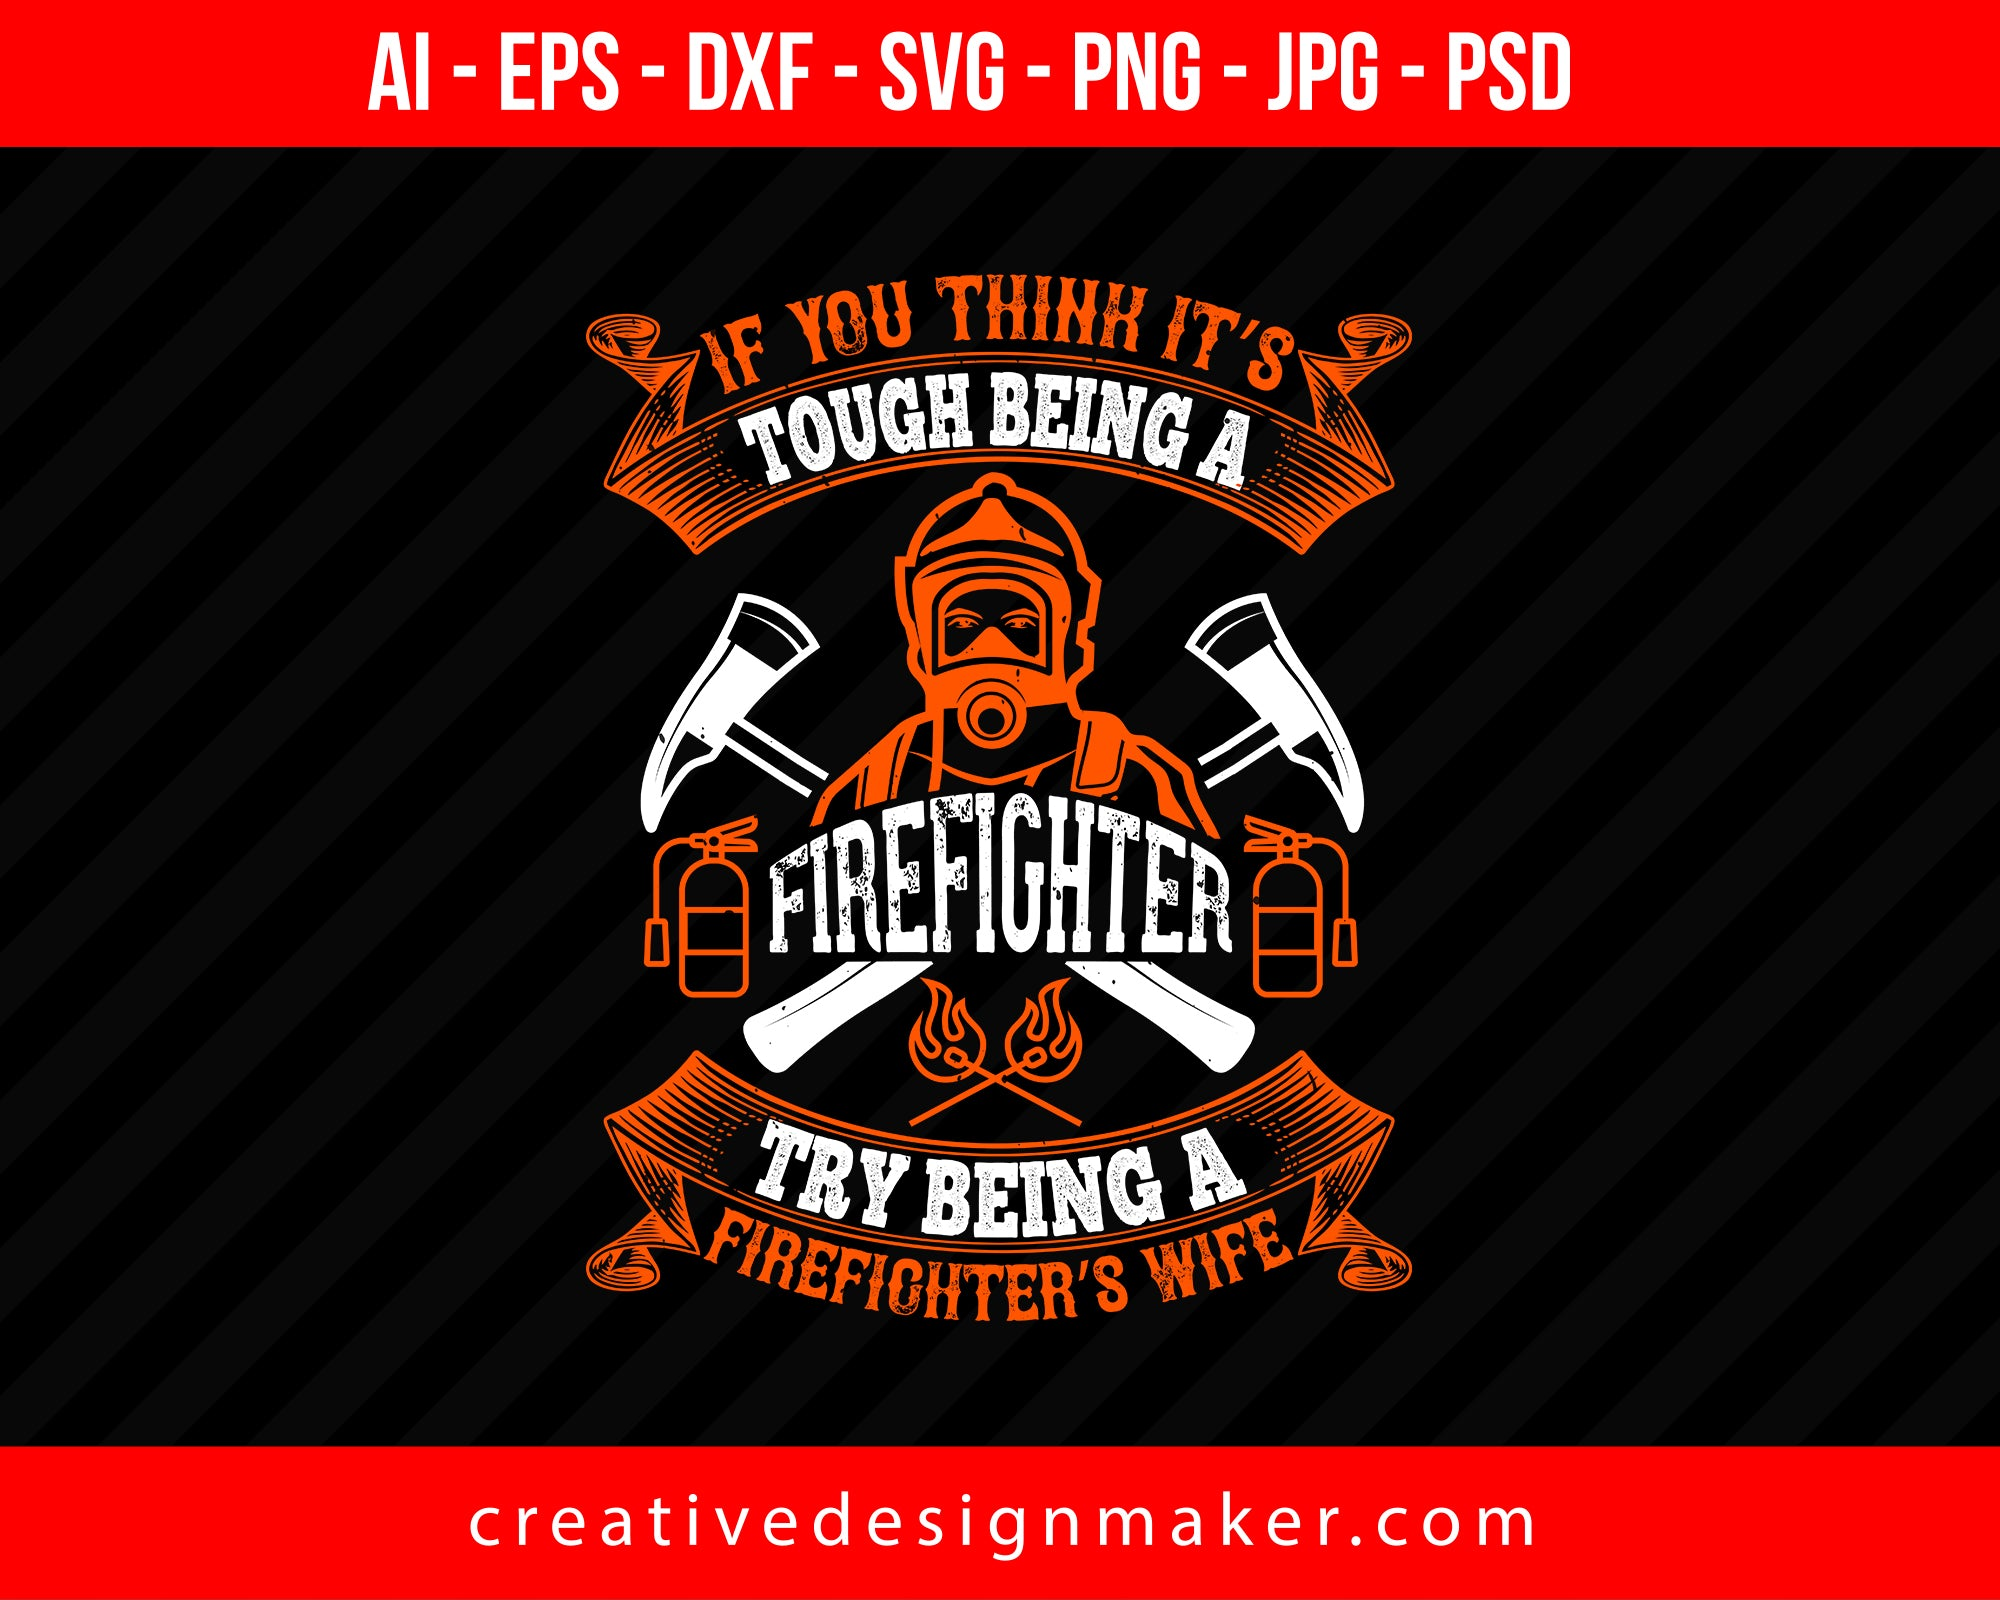 If You Think It's Tough Being A Firefighter, Try Being A Firefighter's Wife Print Ready Editable T-Shirt SVG Design!